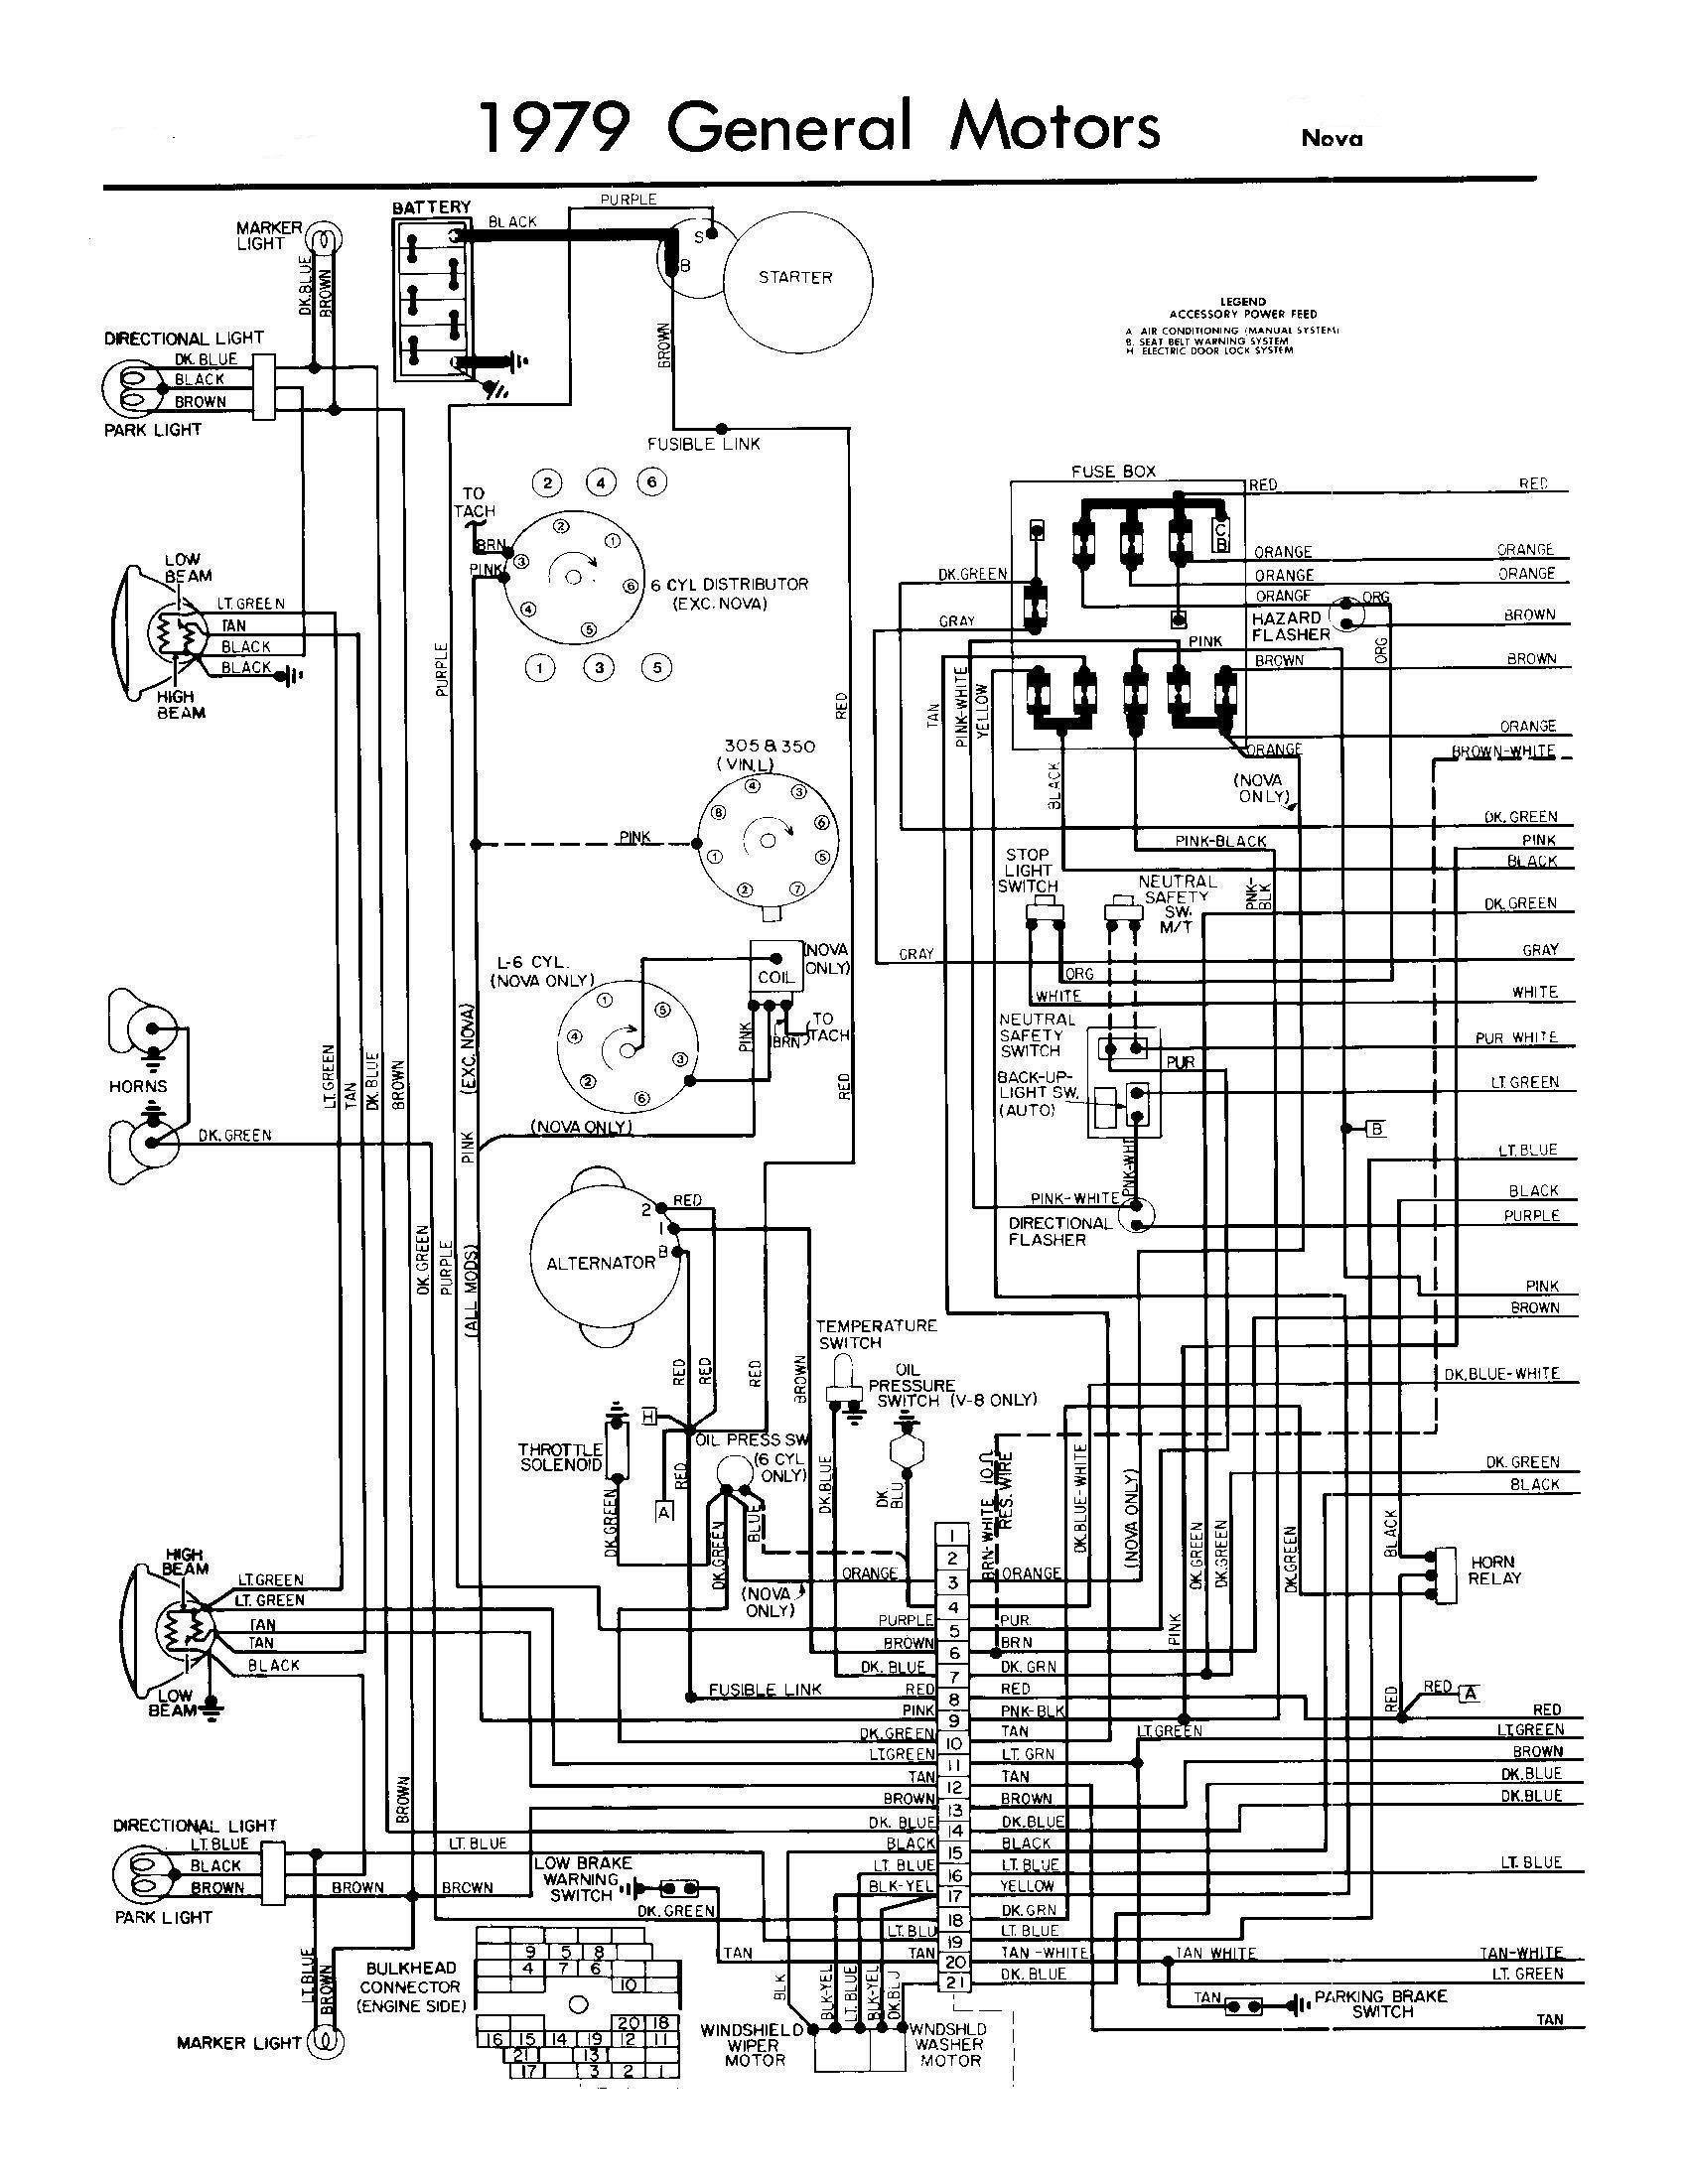 78 Chevy Truck Wiring Diagram 1978 Chevy Truck Tail Light Wiring Harness Diagram Simple Of 78 Chevy Truck Wiring Diagram 1976 Chevy Truck Wiring Schematic Wiring Diagram Options